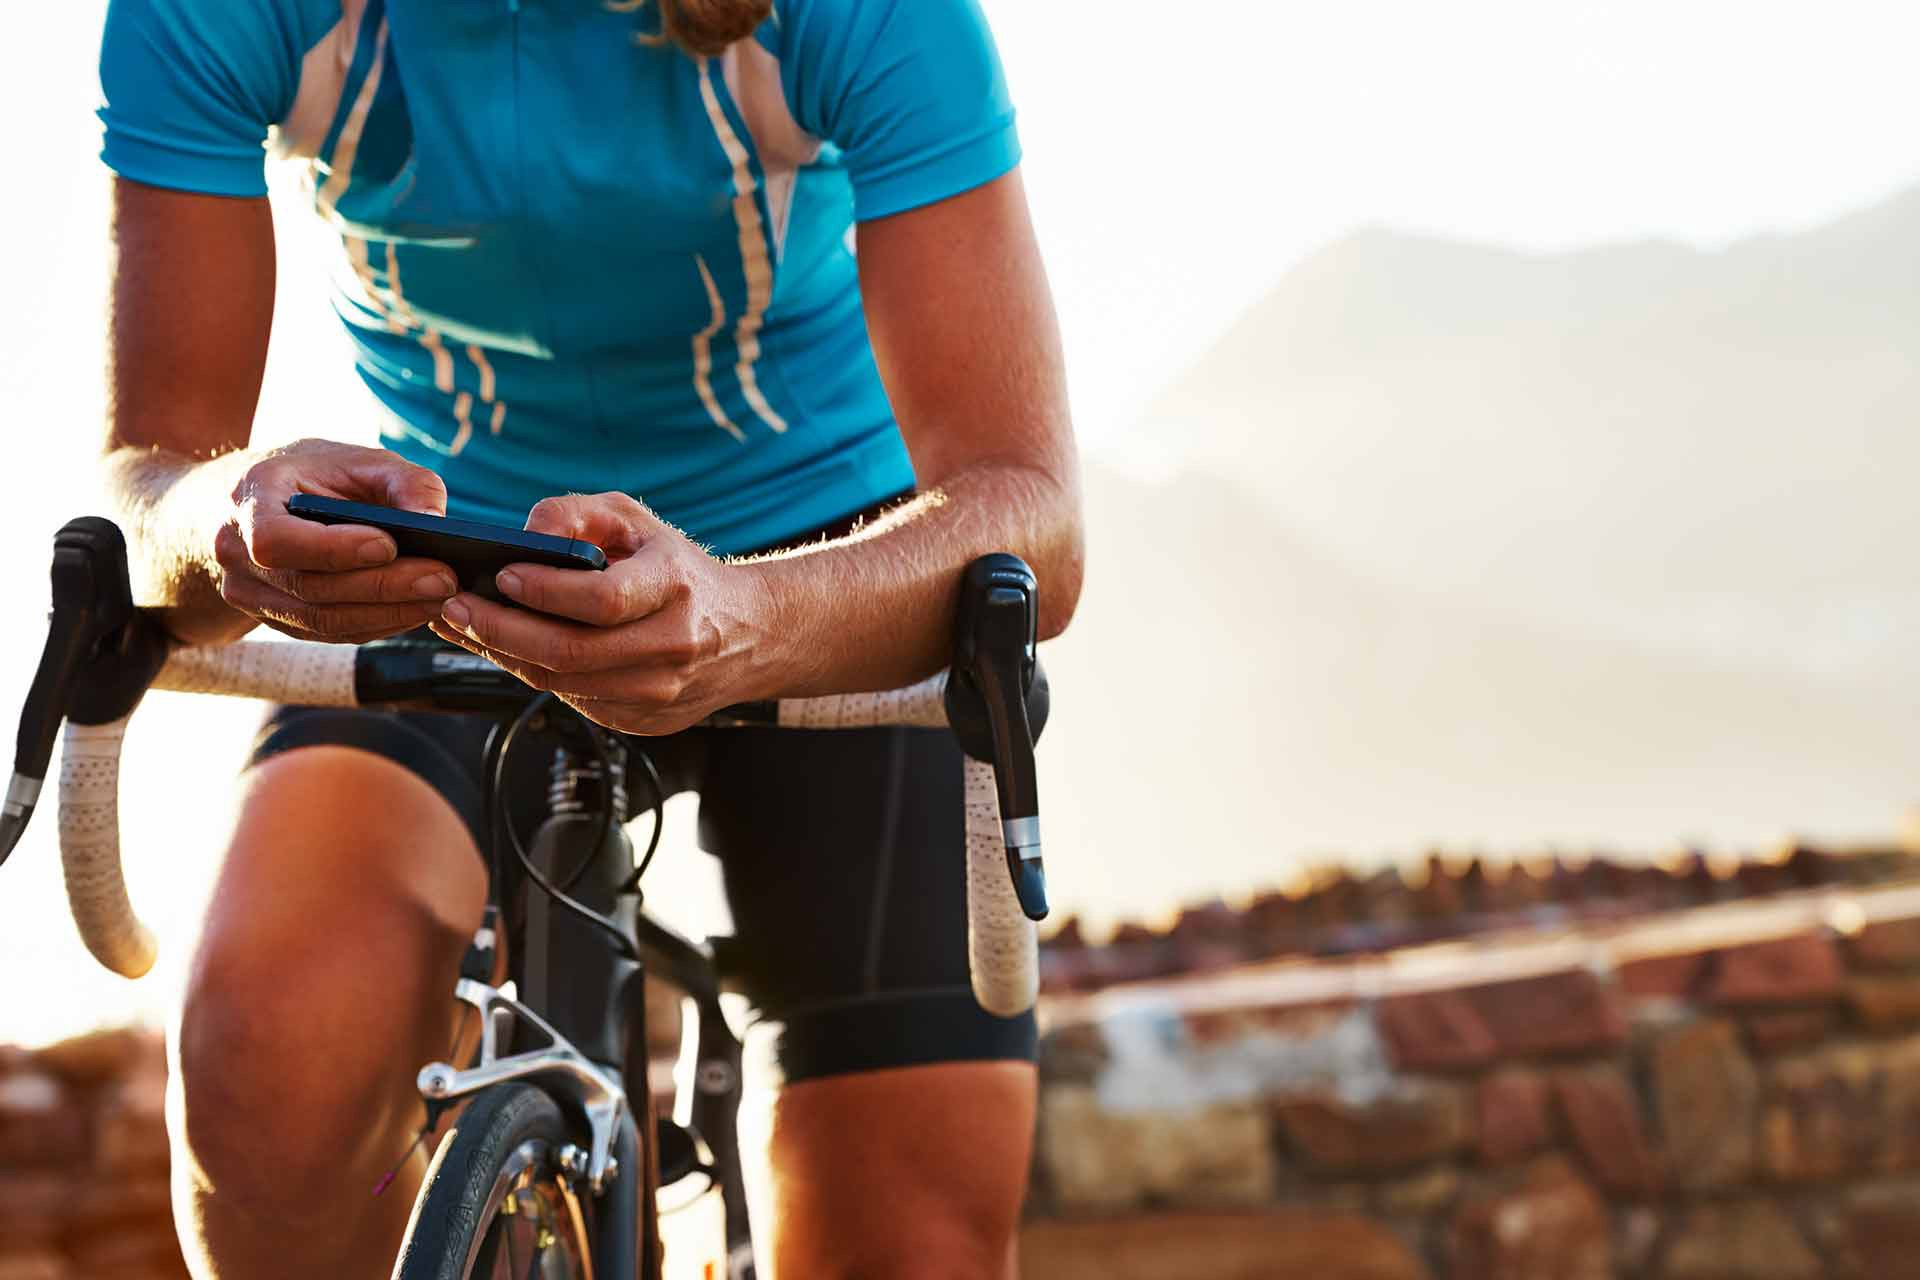 Cyclists checking the health of his bicycle components on the Hubtiger app.